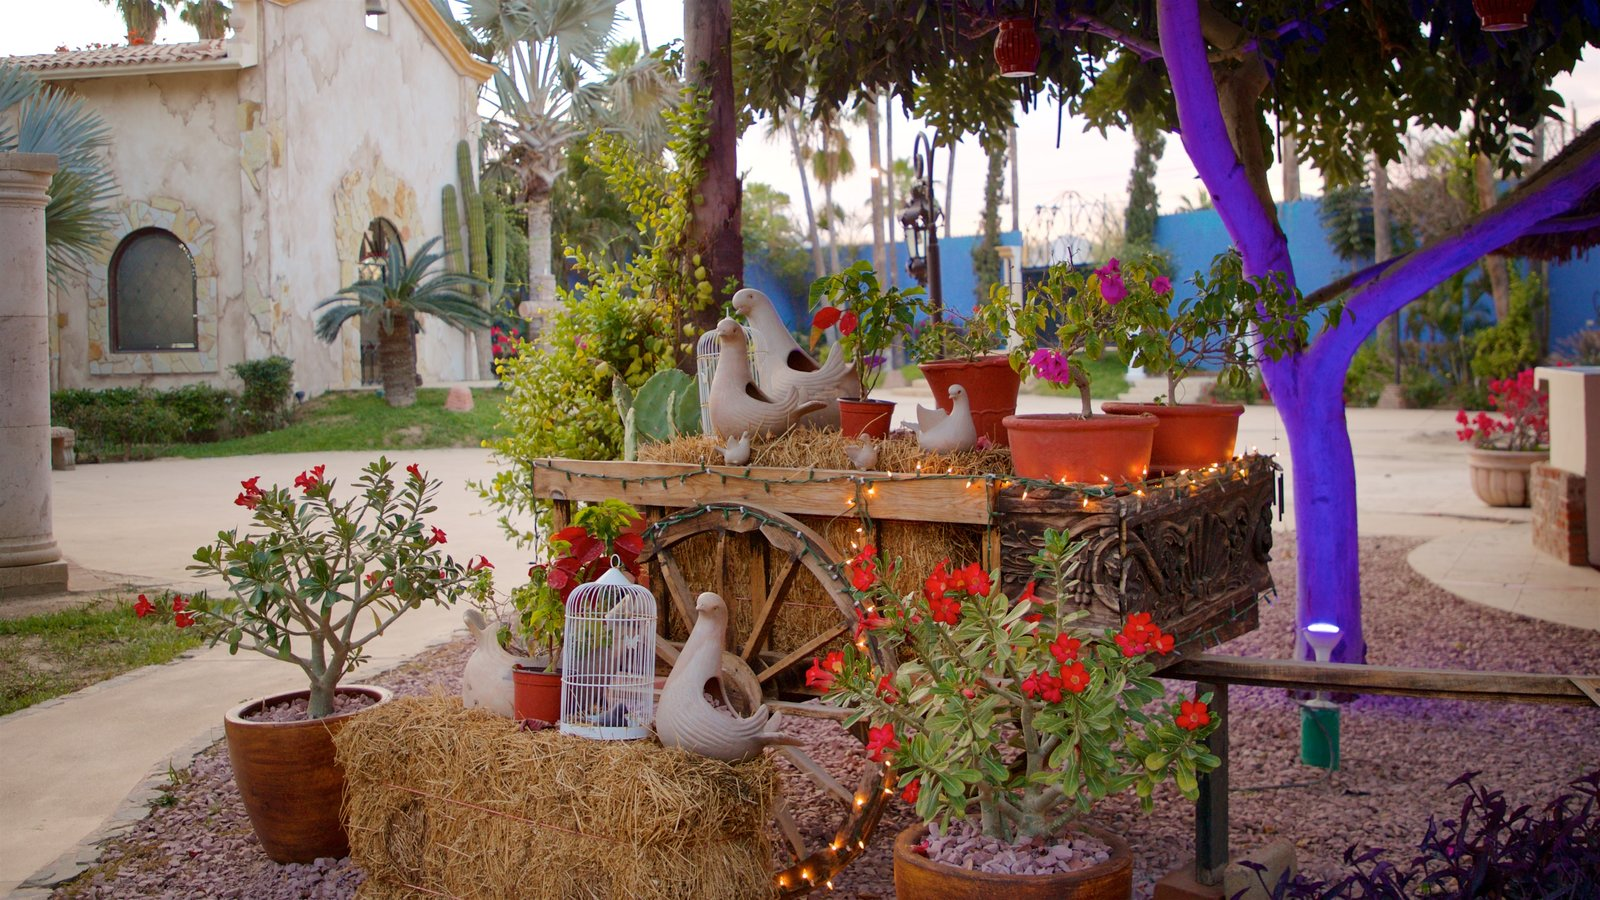 San Jose del Cabo Art District which includes flowers and a garden